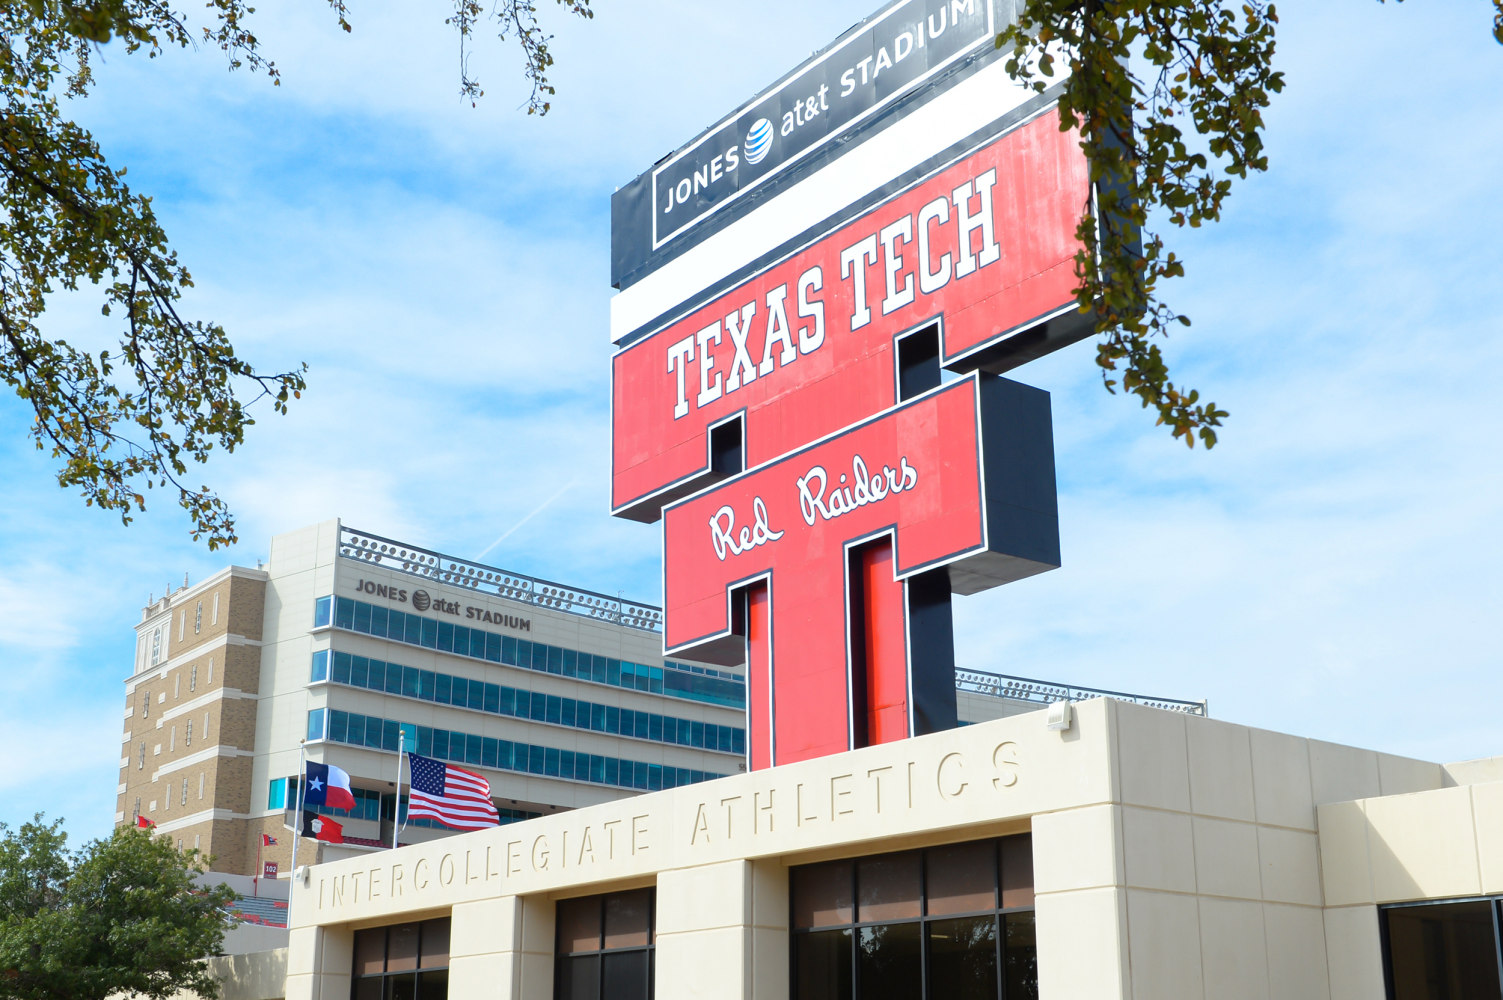 Texas Tech officer killed at campus police headquarters, suspect in custody